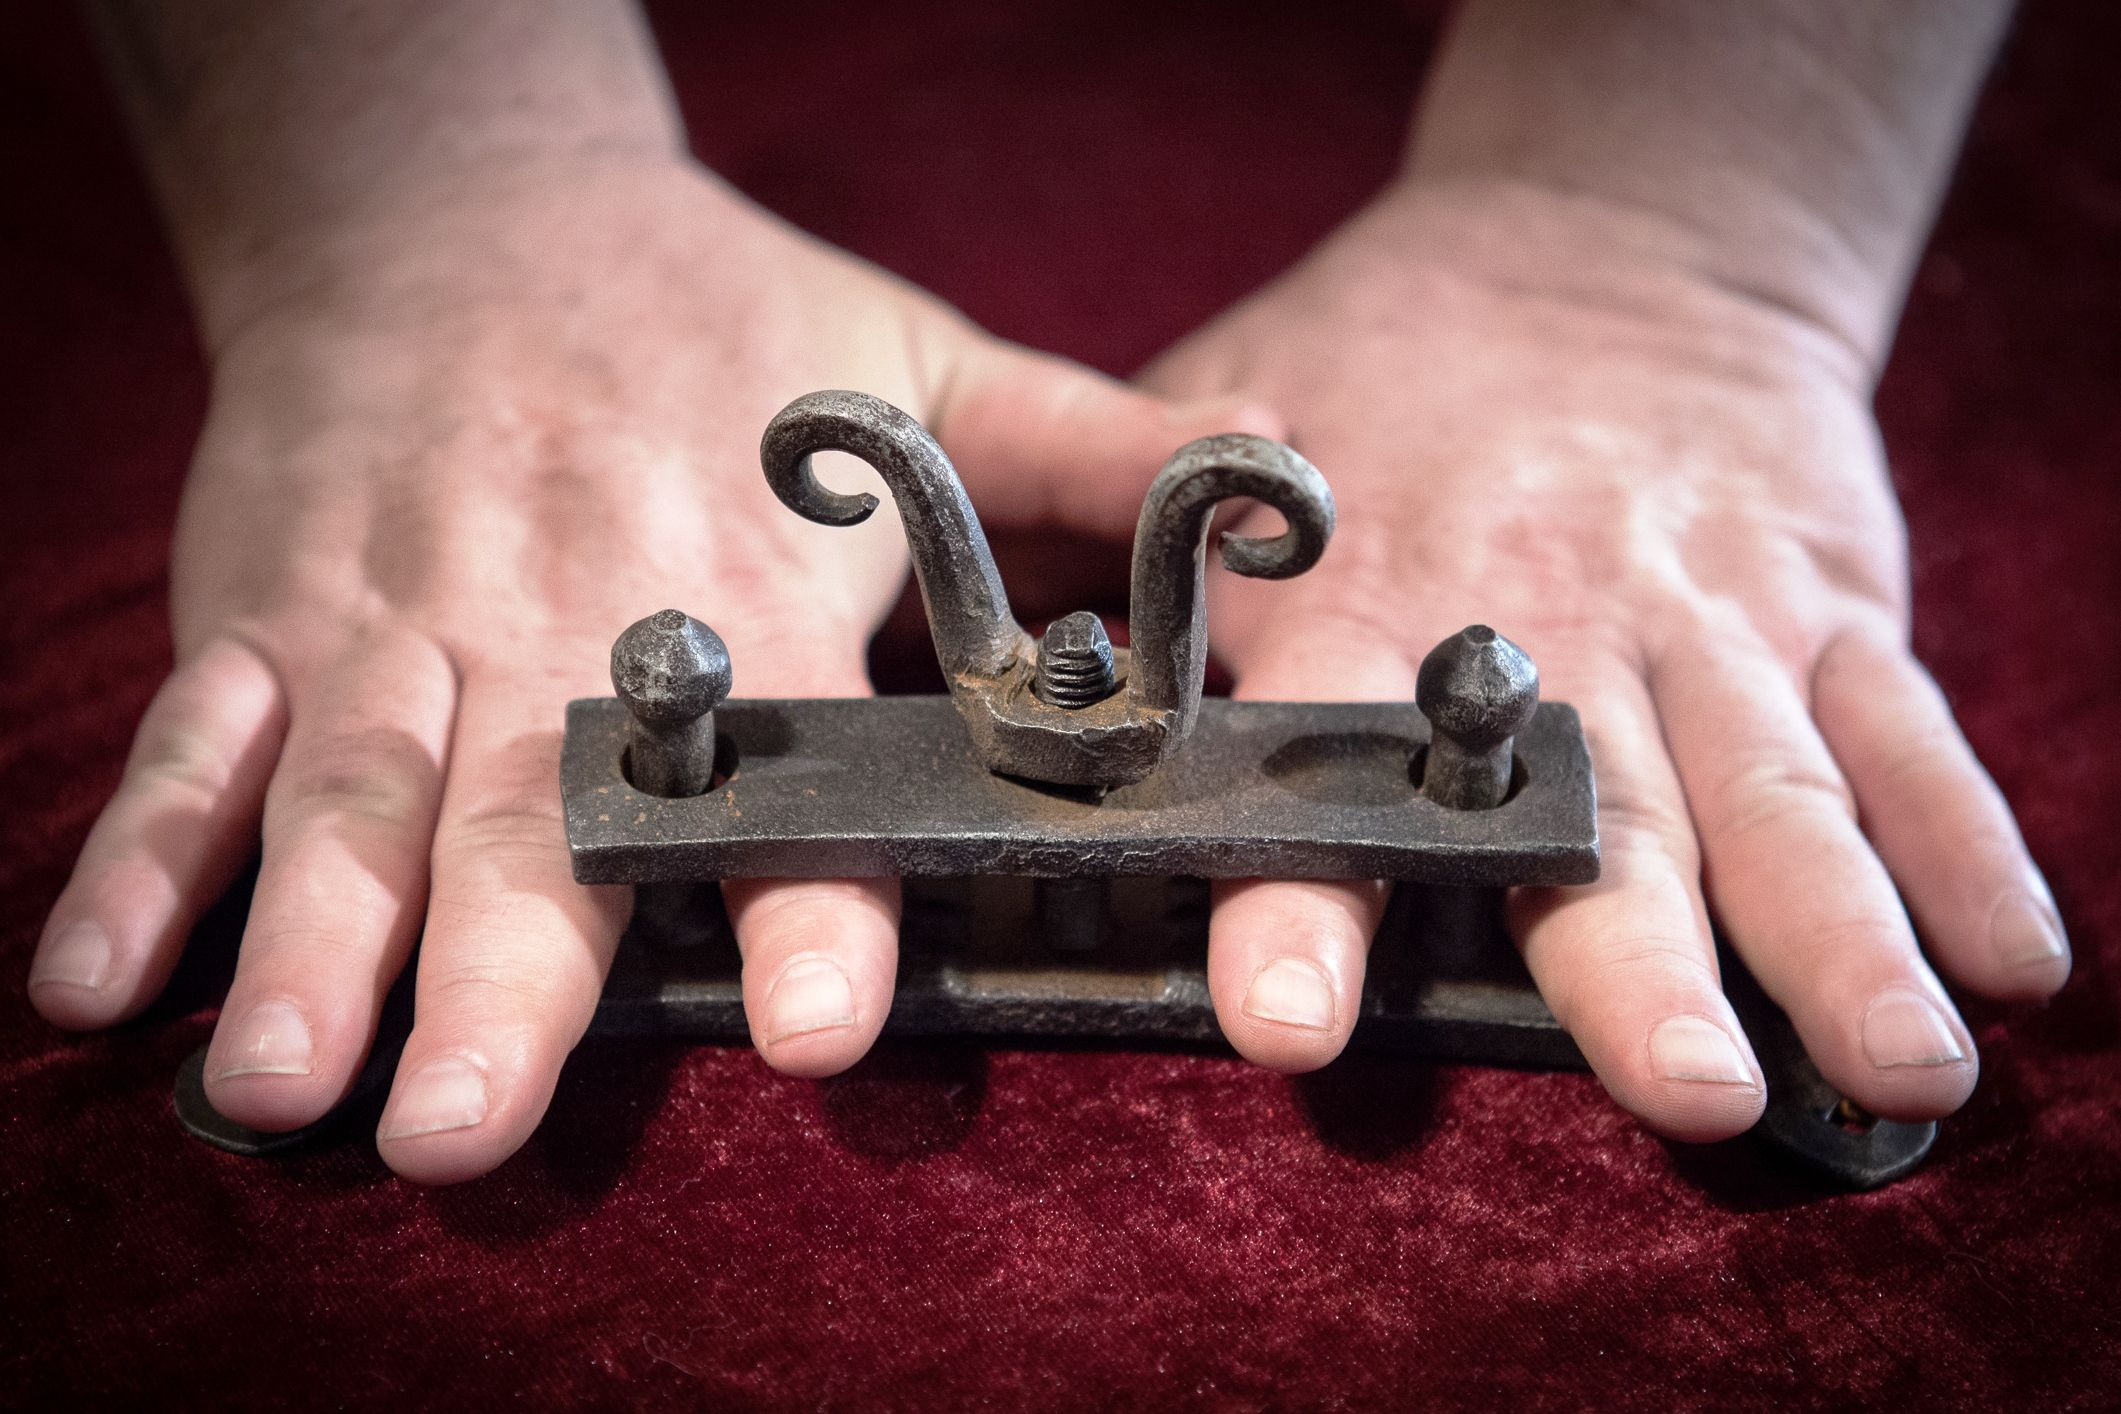 A set of finger screws such as this one was designed to elicit confessions